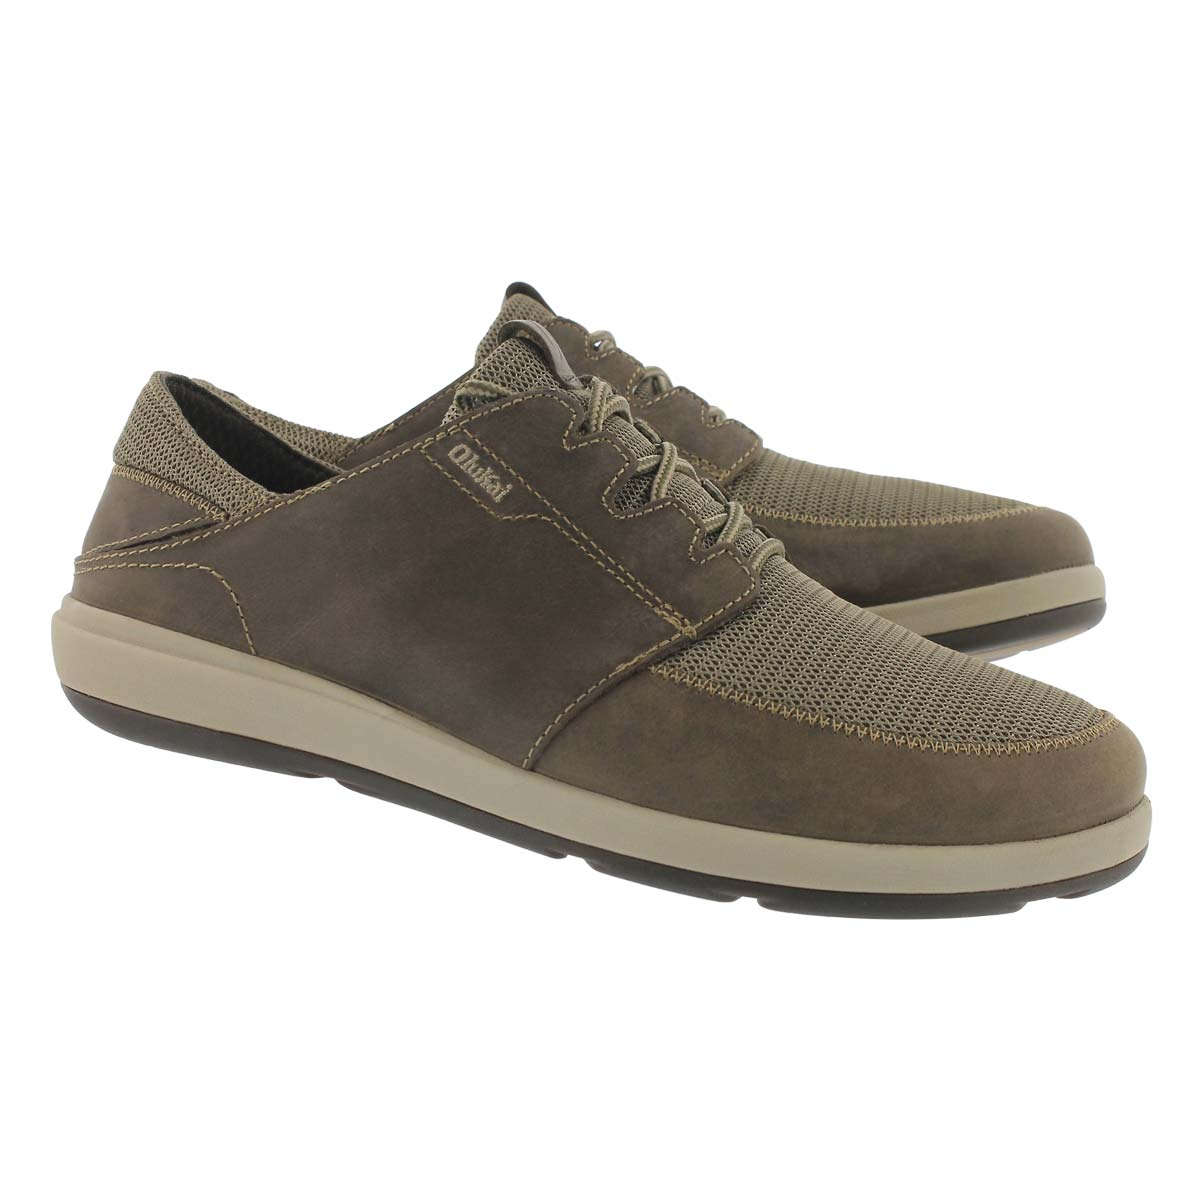 Mns Makia lace clay casual shoe